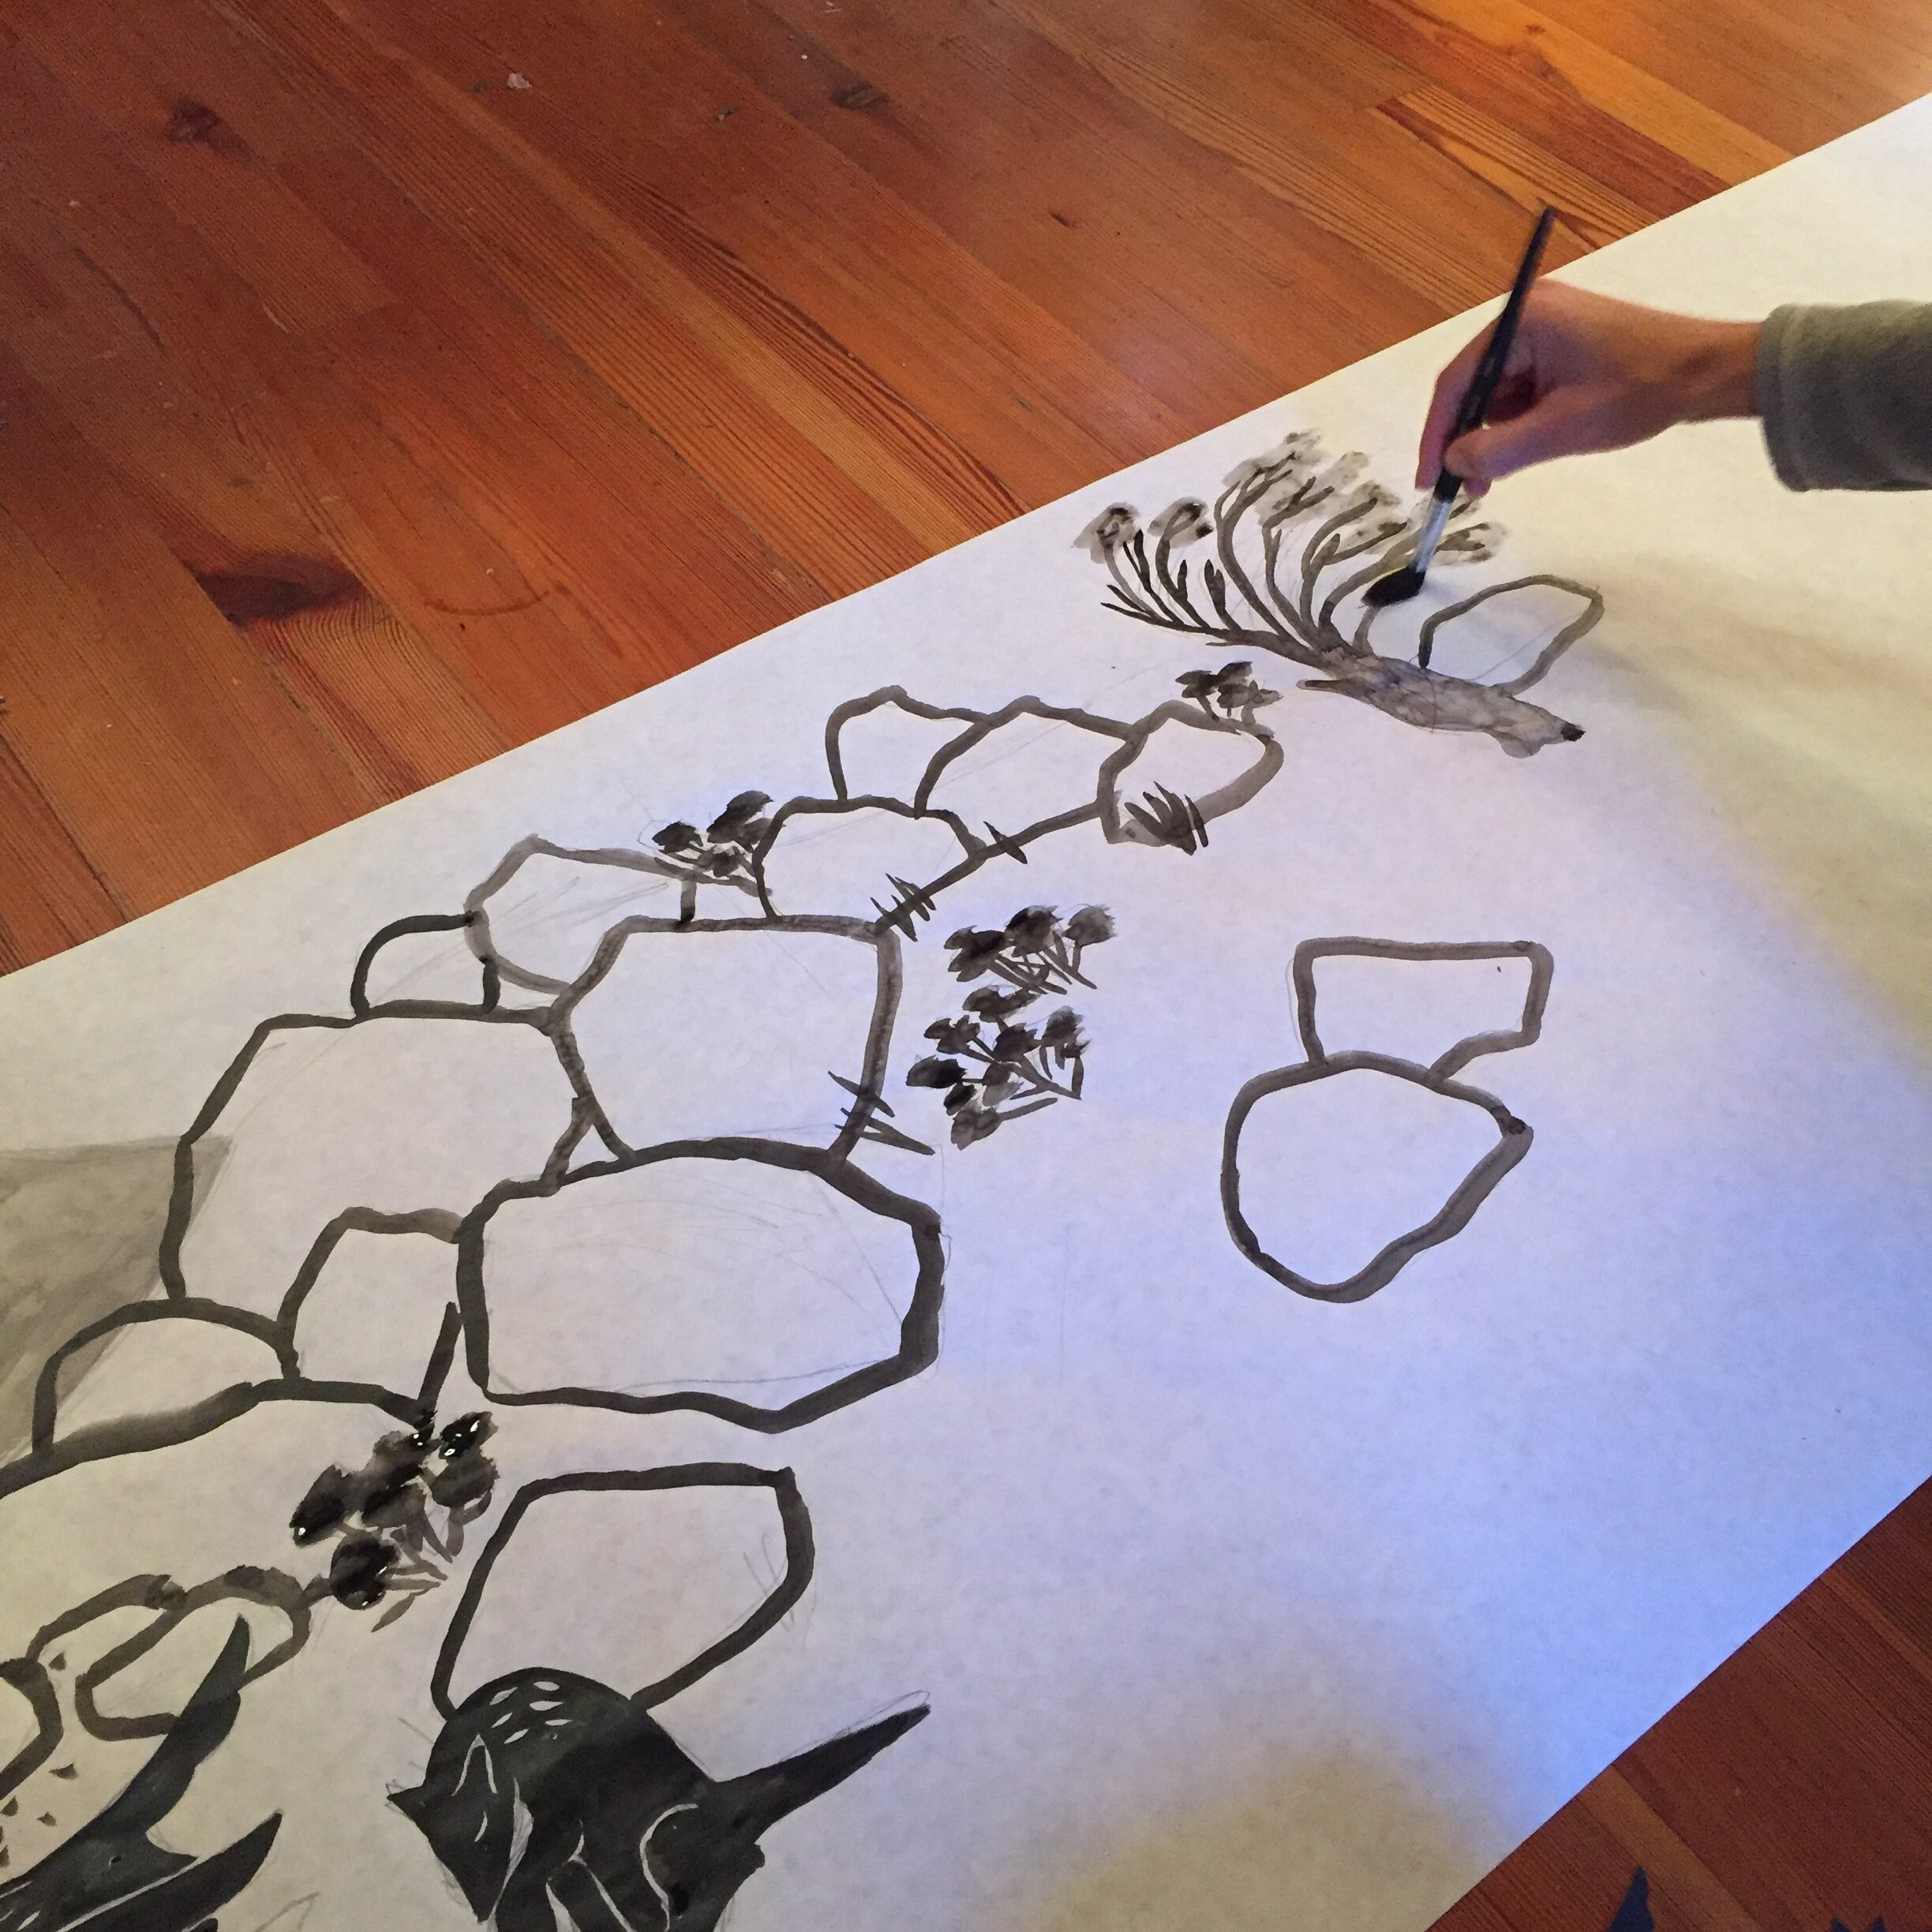 Painting with India ink.